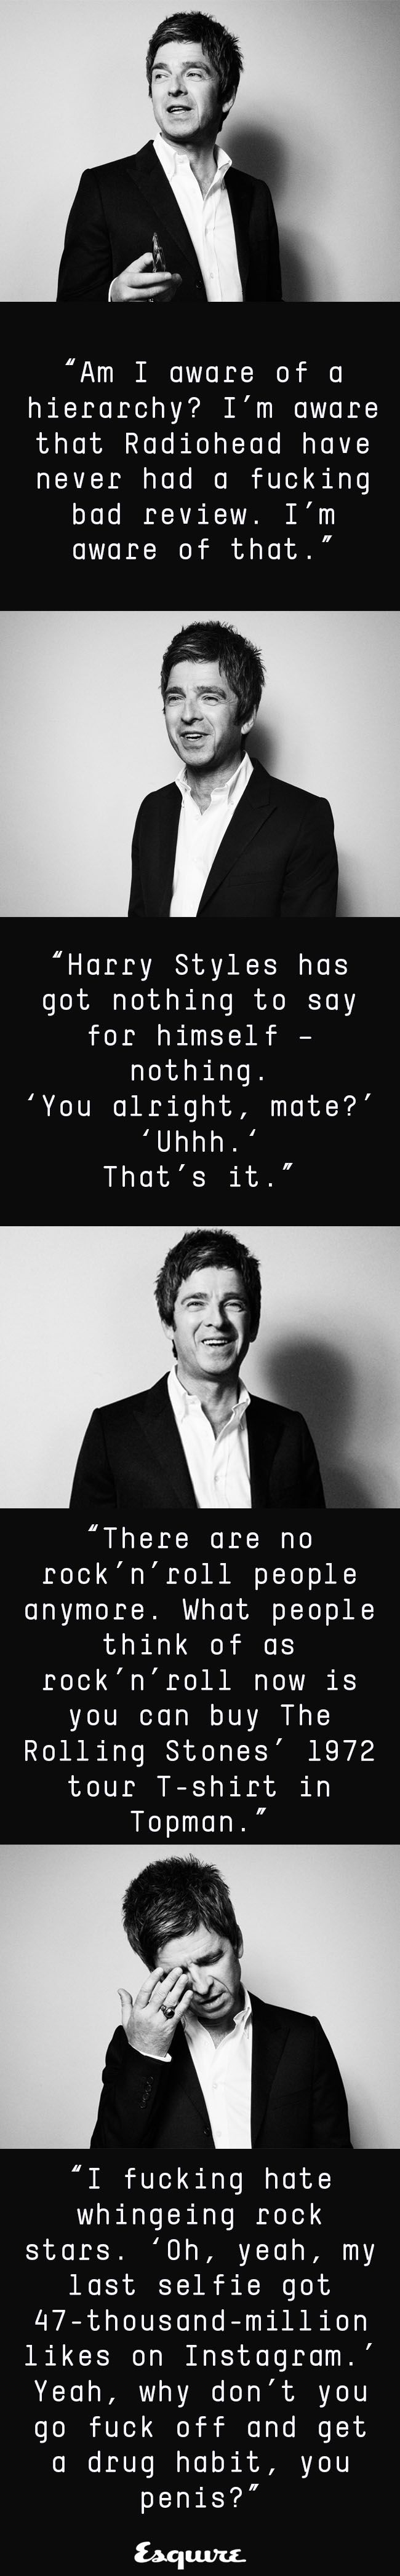 Read Noel Gallagher giving it both barrels, only on Esquire: http://www.esquire.co.uk/culture/music/9081/noel-gallagher-is-esquires-december-cover-star/